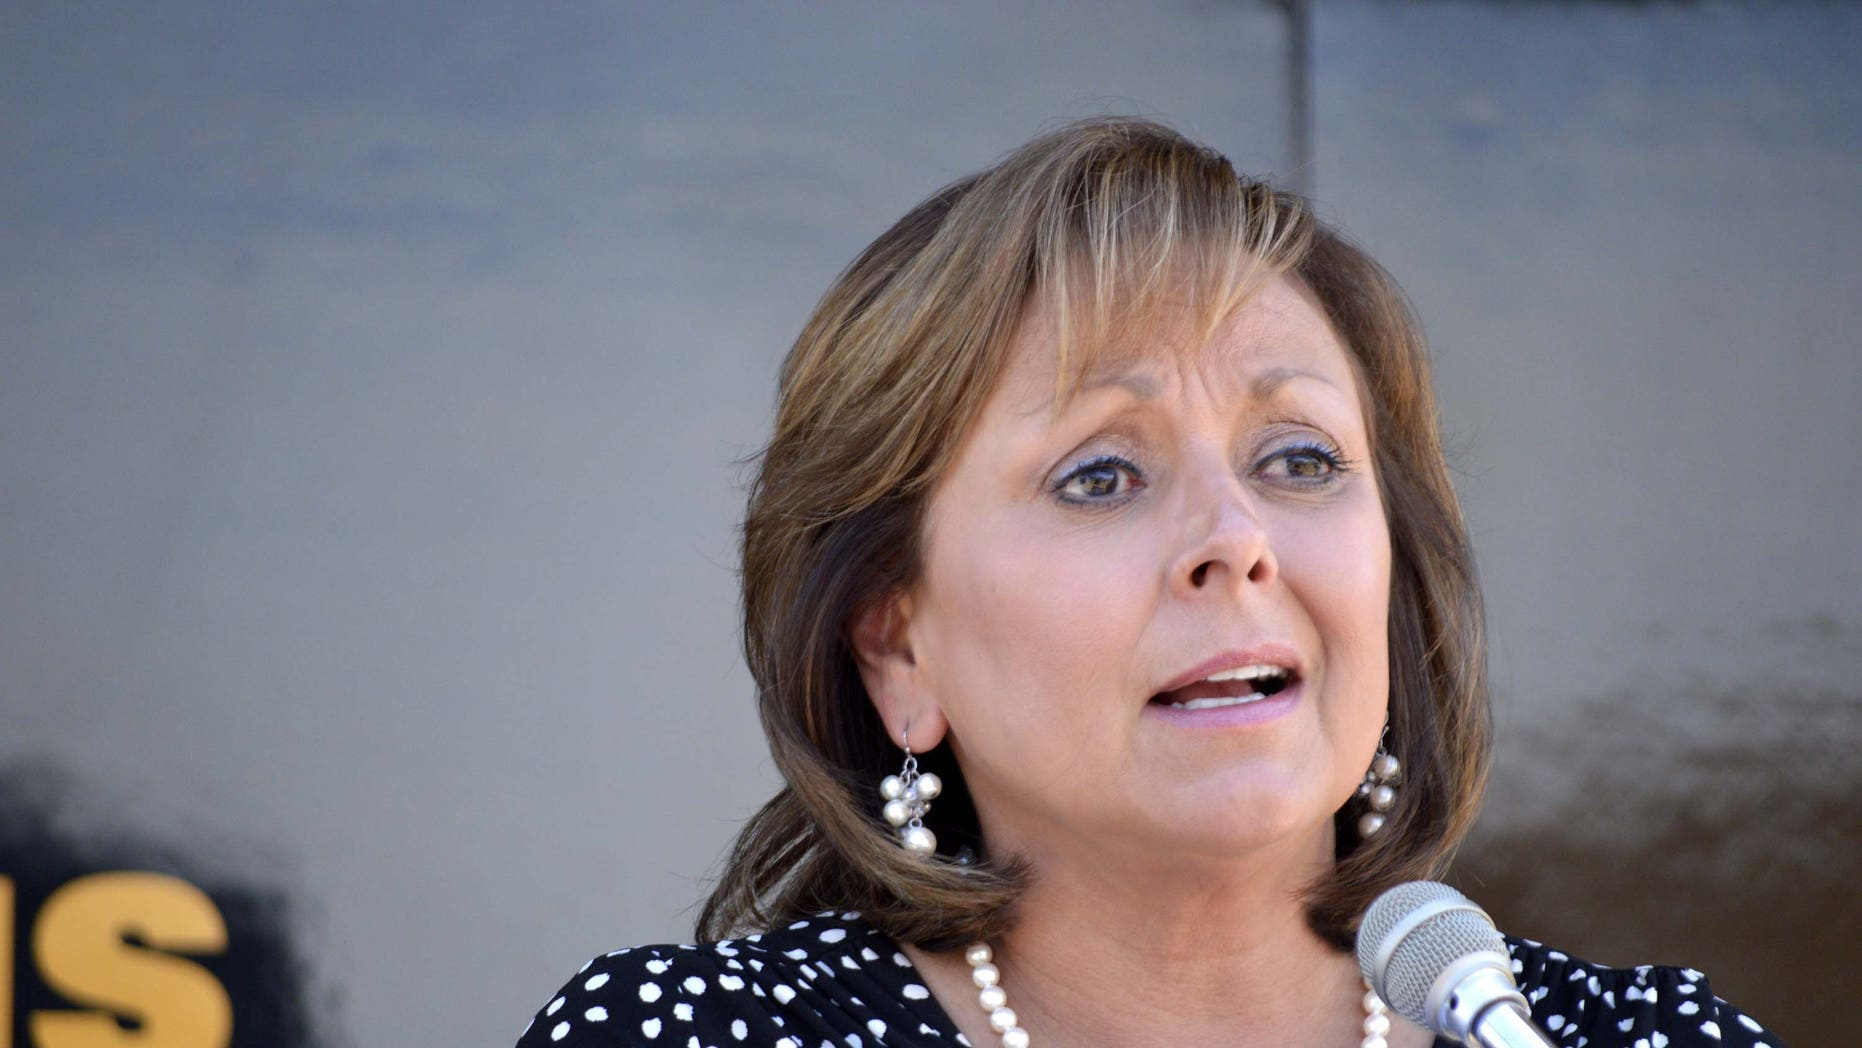 New Mexico Gov. Susana Martinez speaks about new laws expanding the state's Amber Alert and fighting child prostitution Wednesday, July 1, 2015, at a New Mexico Police State station in Albuquerque N.M. The nation's only Latina governor denounced fellow Republican and GOP presidential hopeful Donald Trump for his comments about Mexican immigrants. (AP Photo/Russell Contreras)